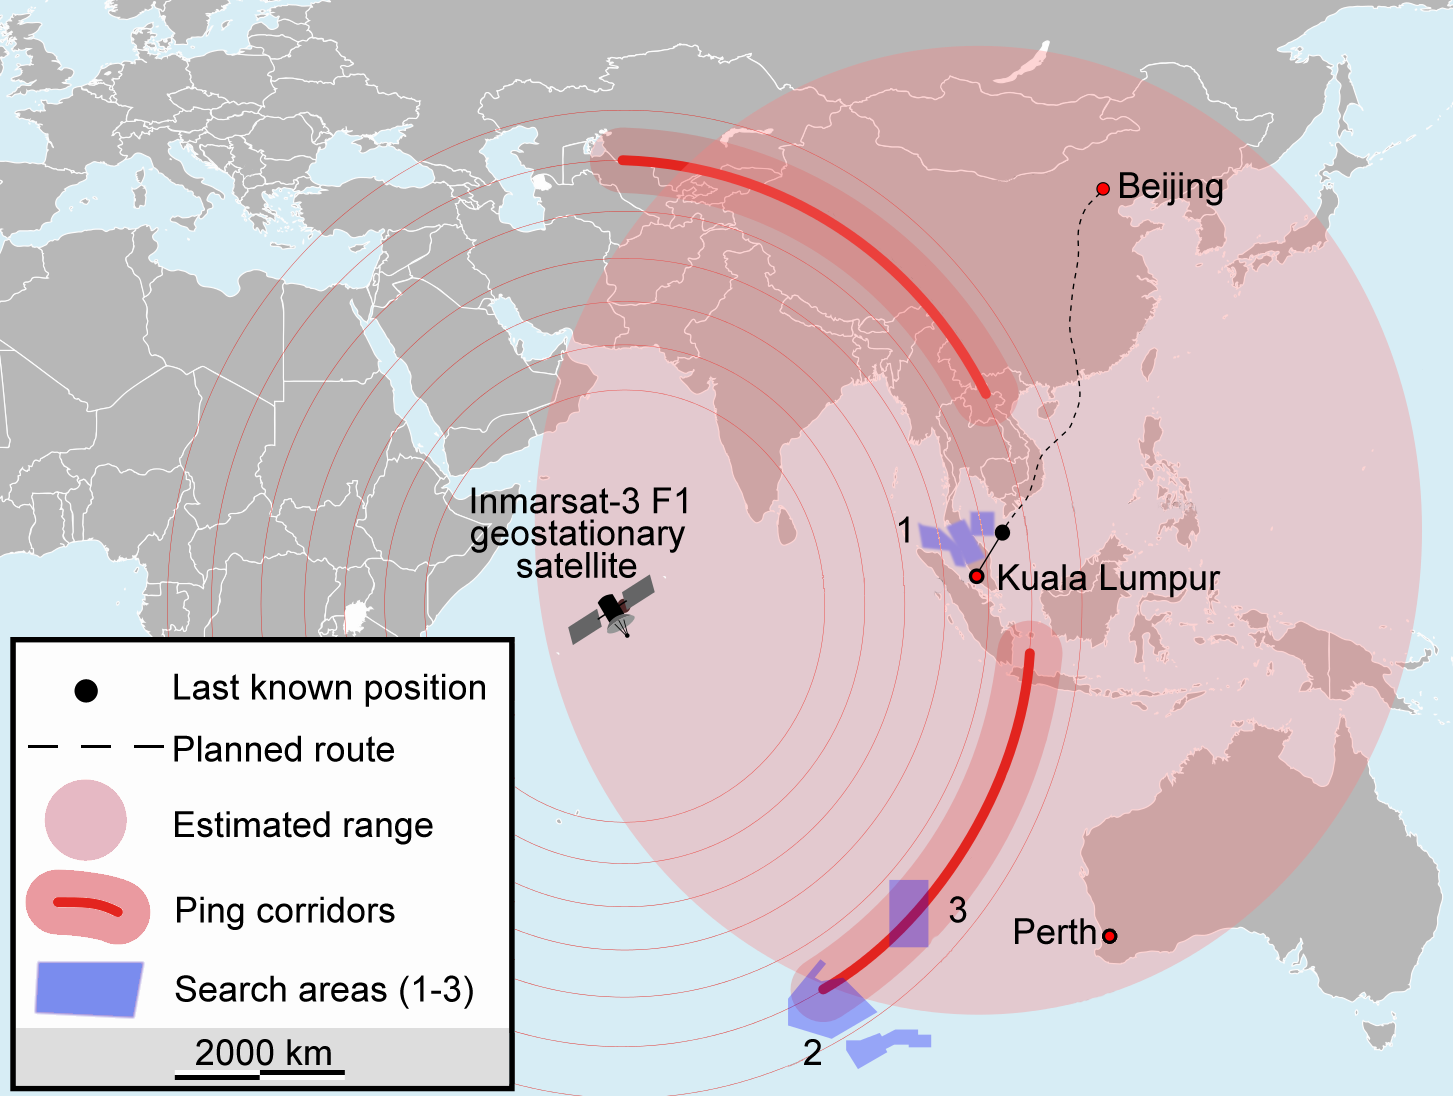 [Speculations] vol mh370 intriguant - Page 9 Map_of_search_for_MH370